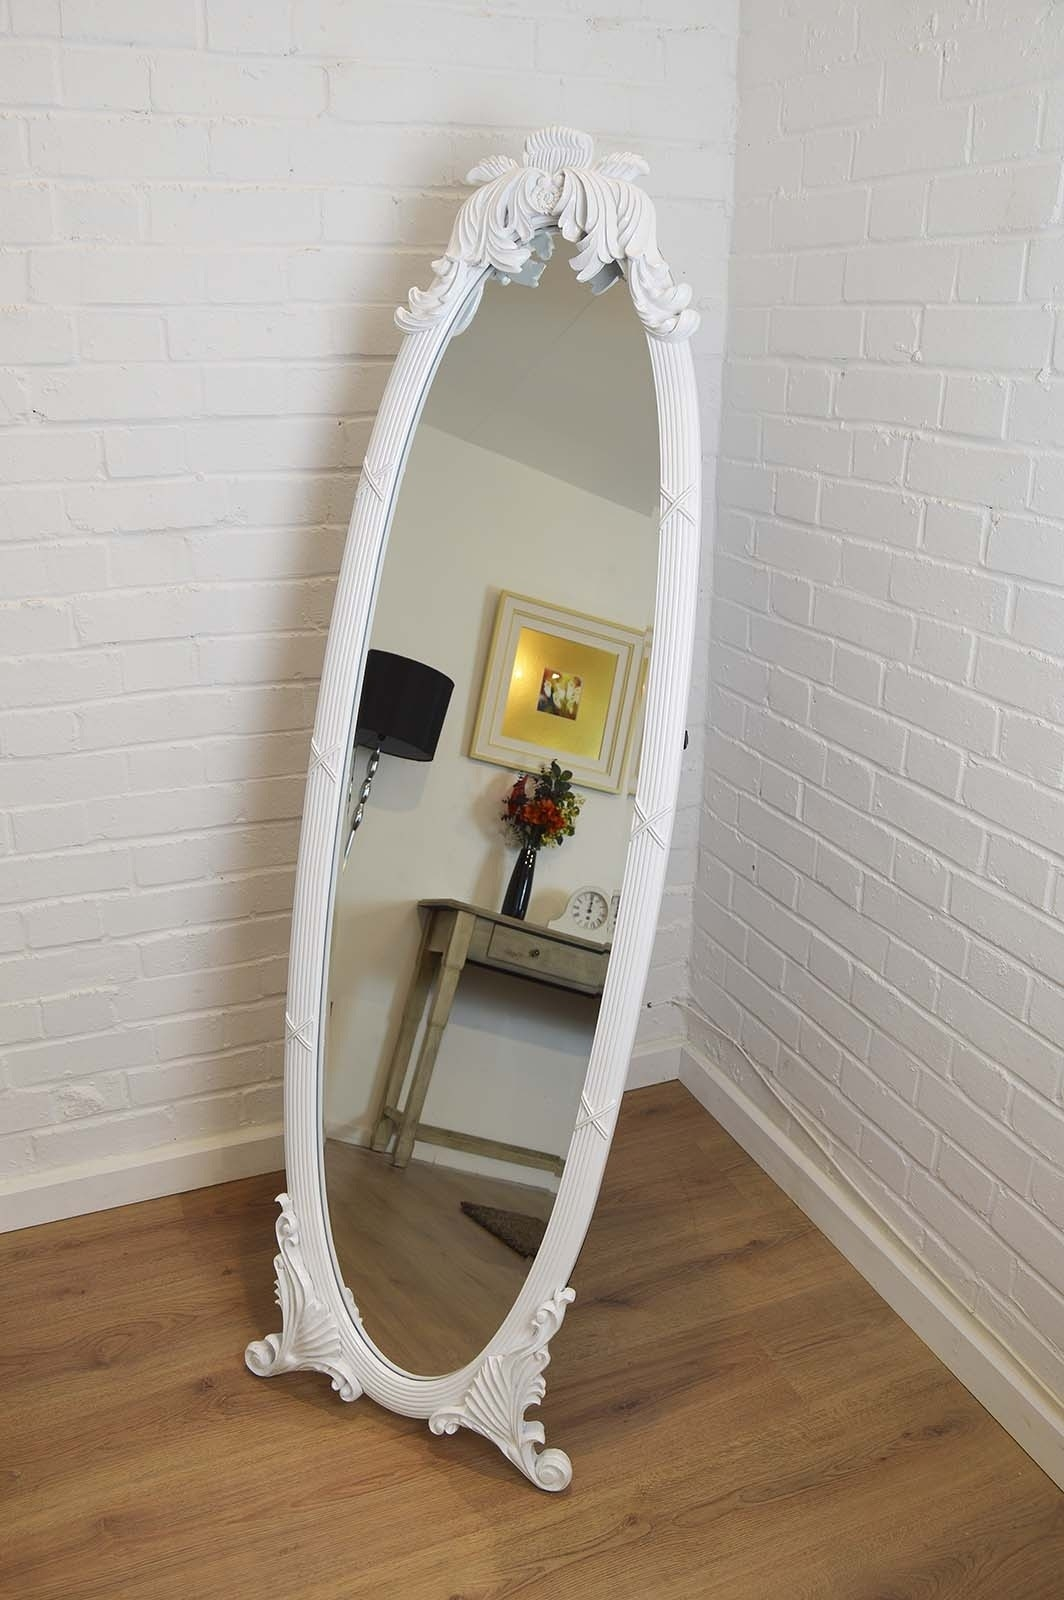 Stand Alone Mirror Infinity Modern Bedroom Mirror S L Infinity With Regard To Antique Free Standing Mirror (Image 15 of 15)